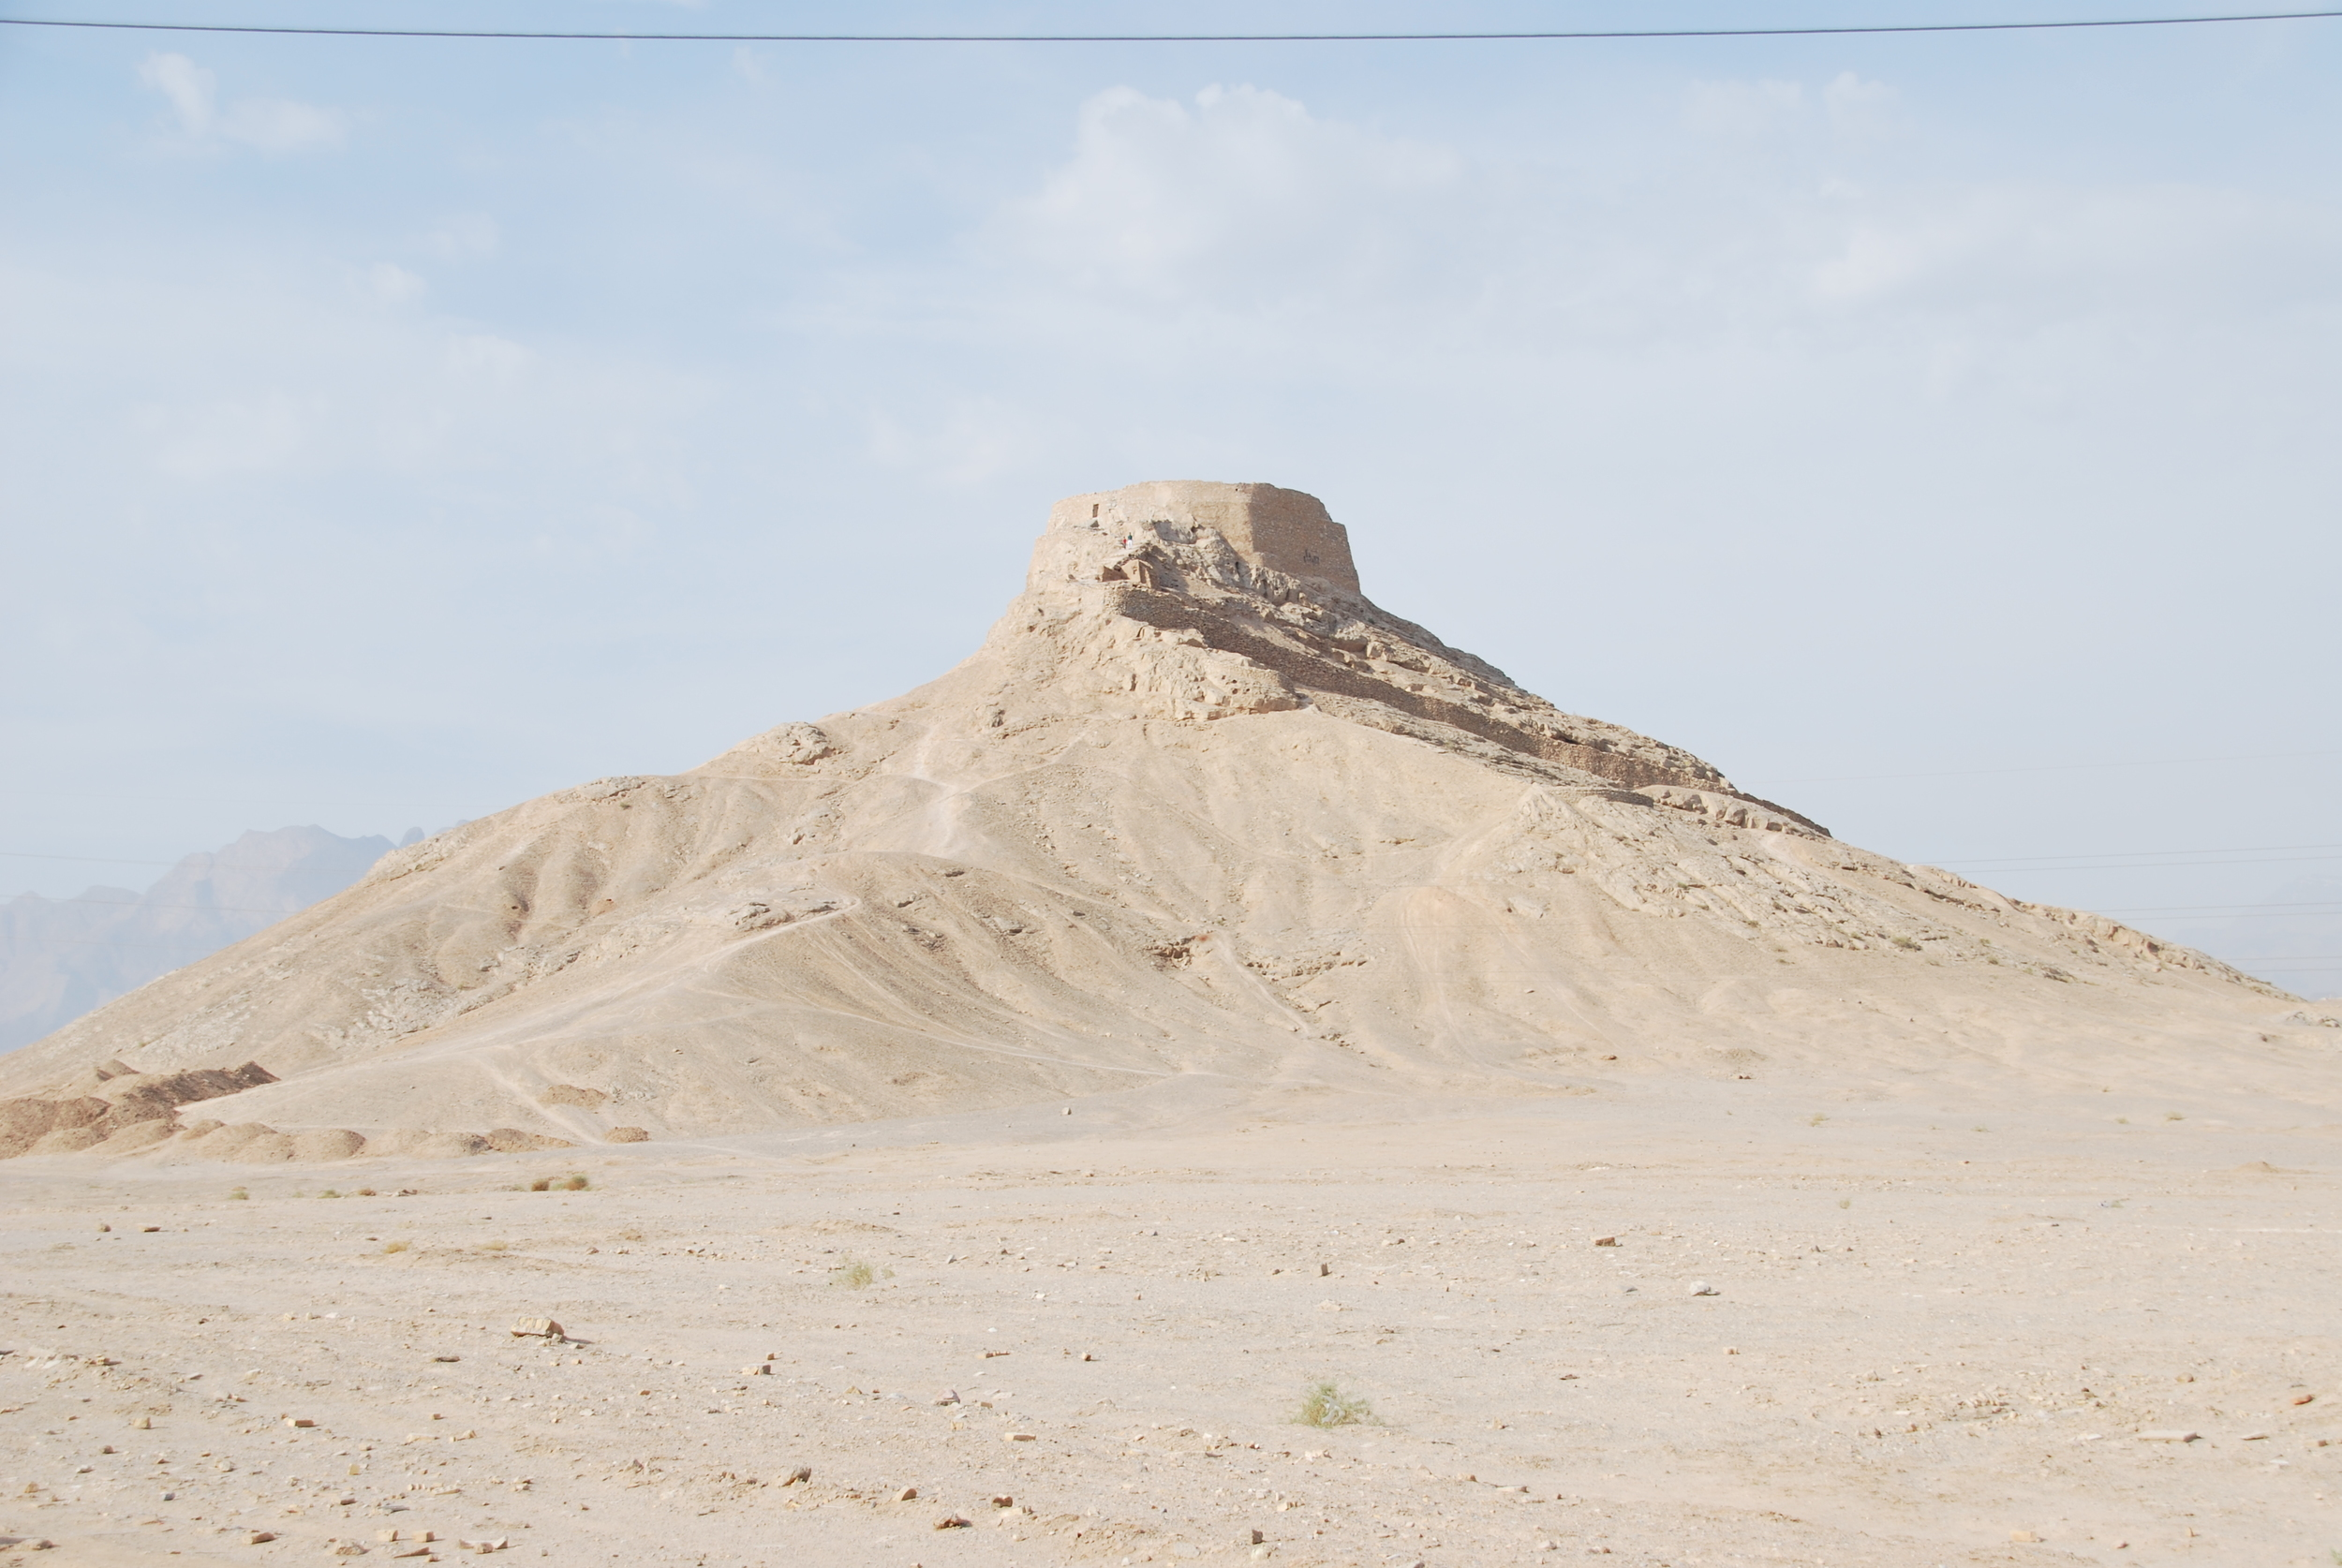 Dakhme - Tower of Silence in Yazd where Zaroastrians left their dead